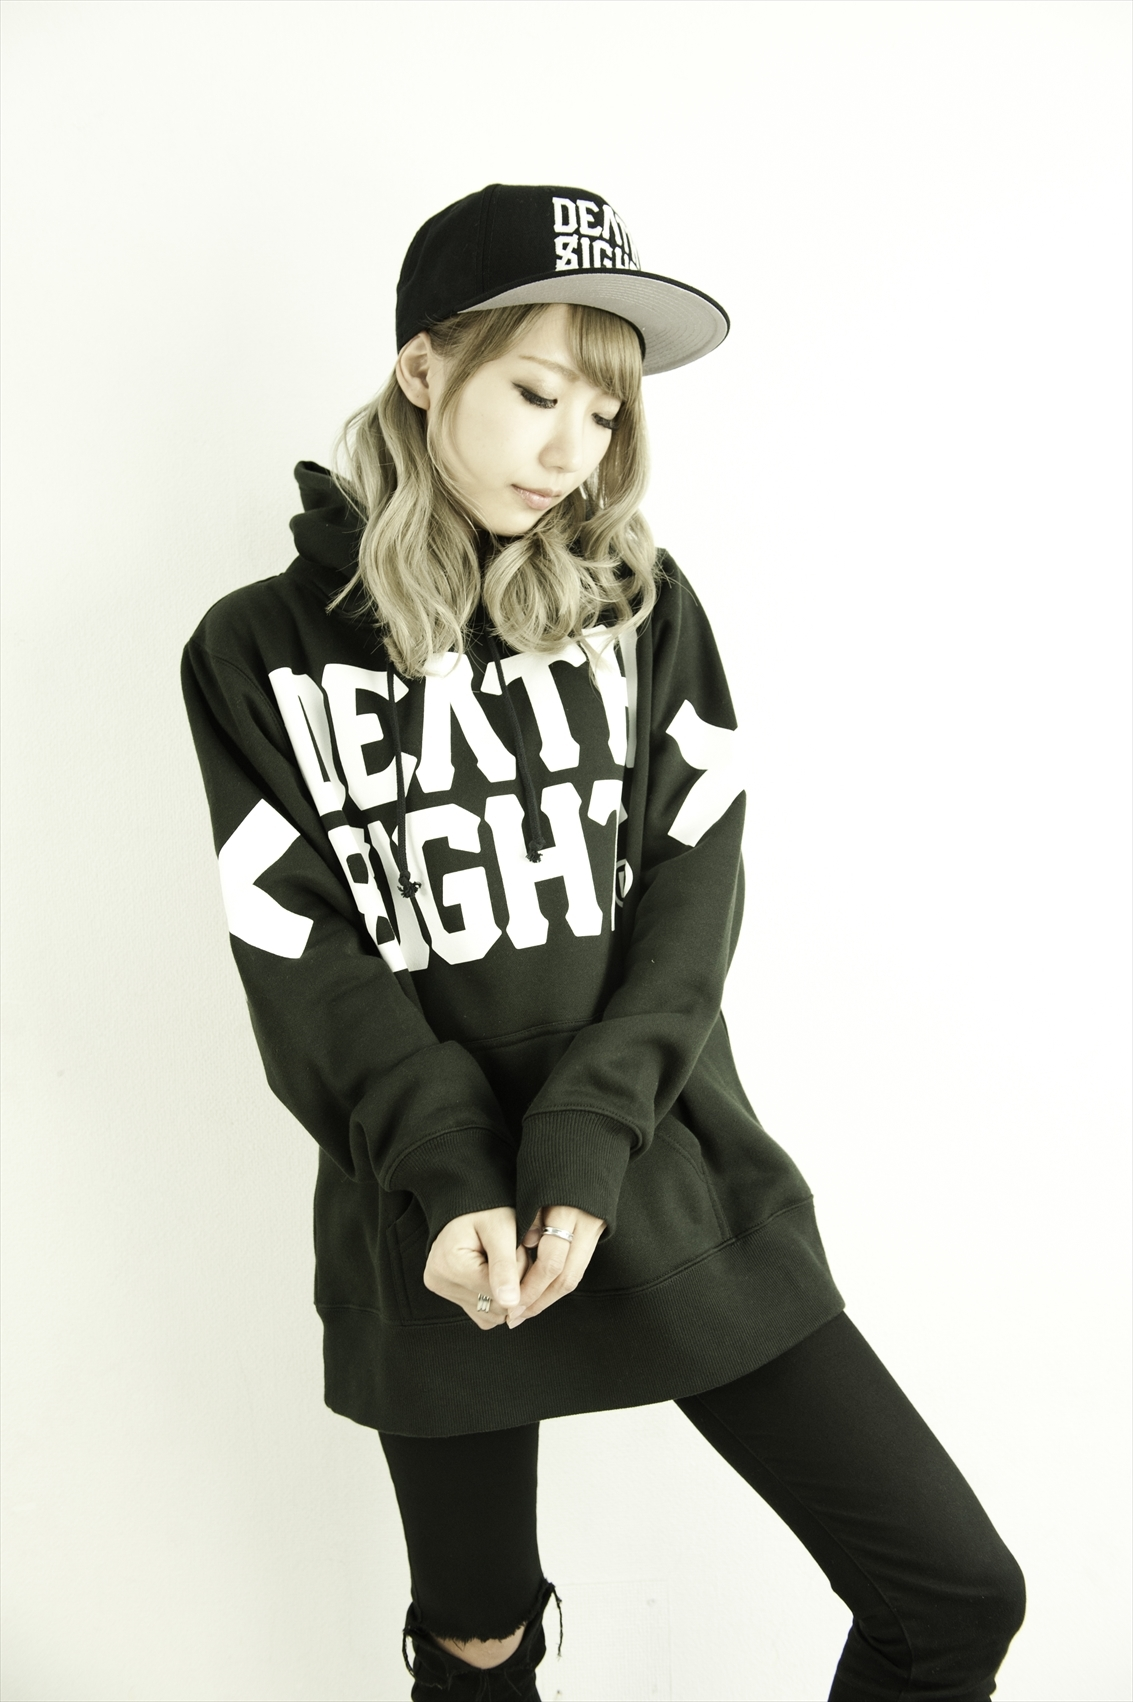 deathsight 17 Logo Cap / BLACK - 画像3